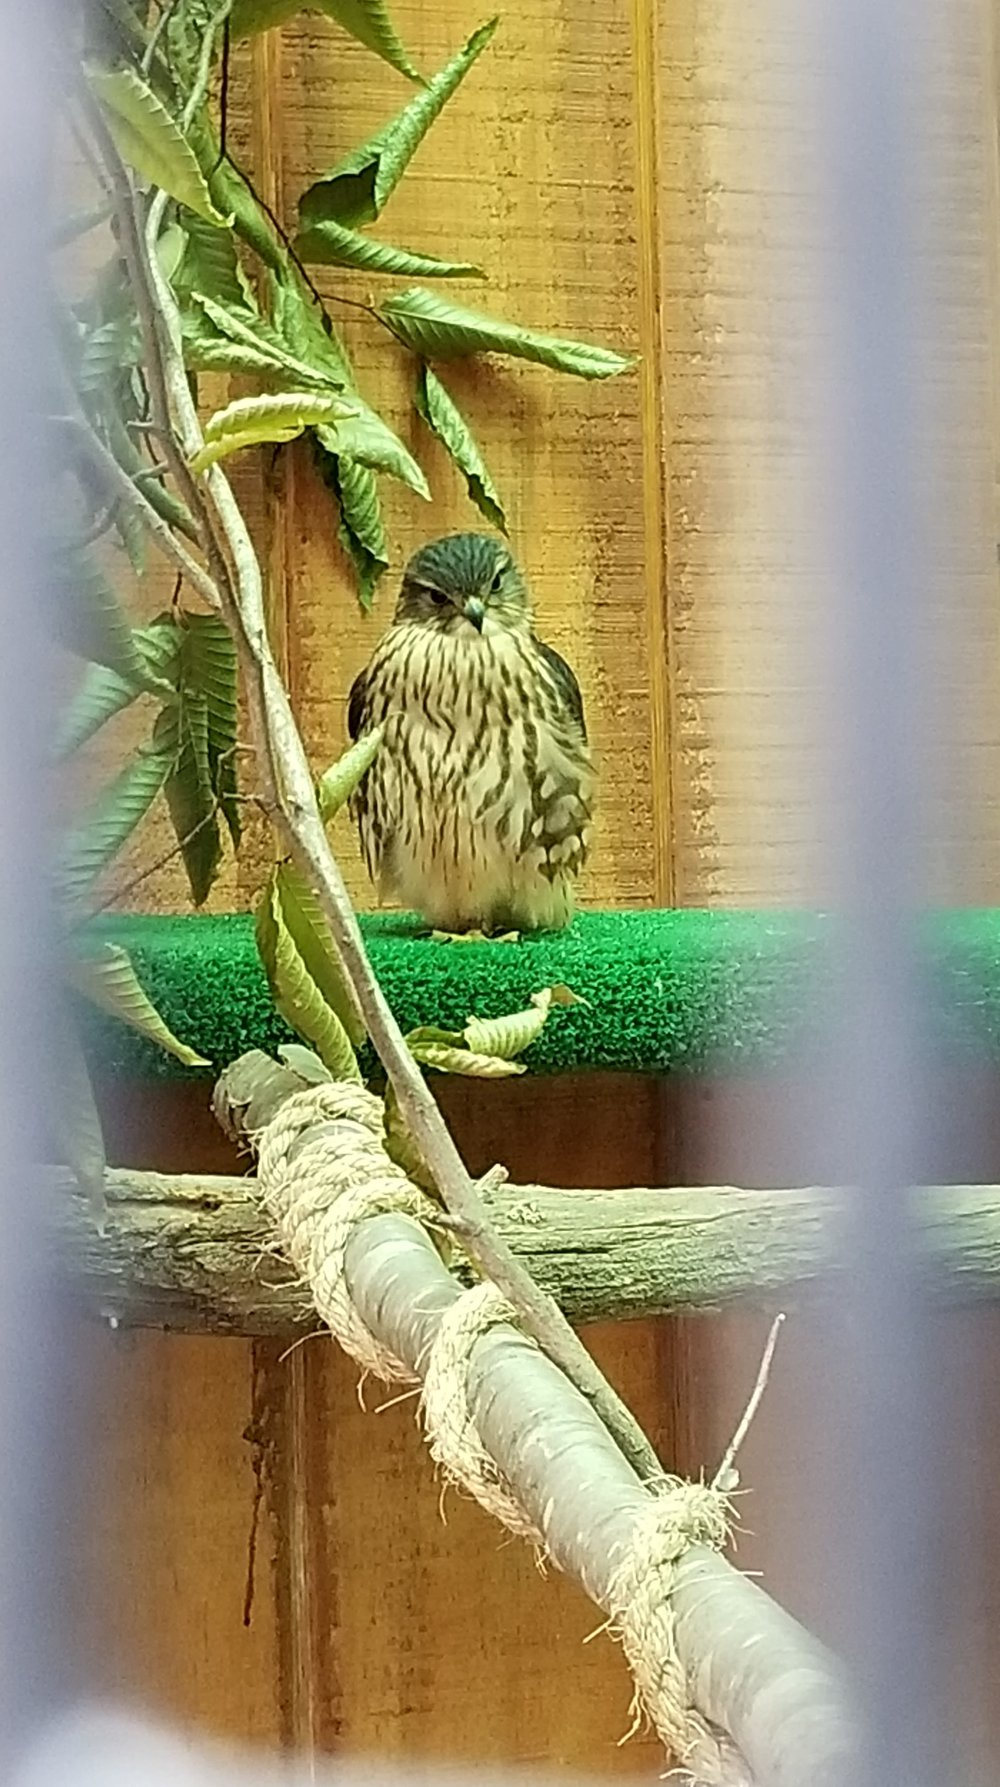 One of the Center for Wildlife's ambassadors, a Merlin